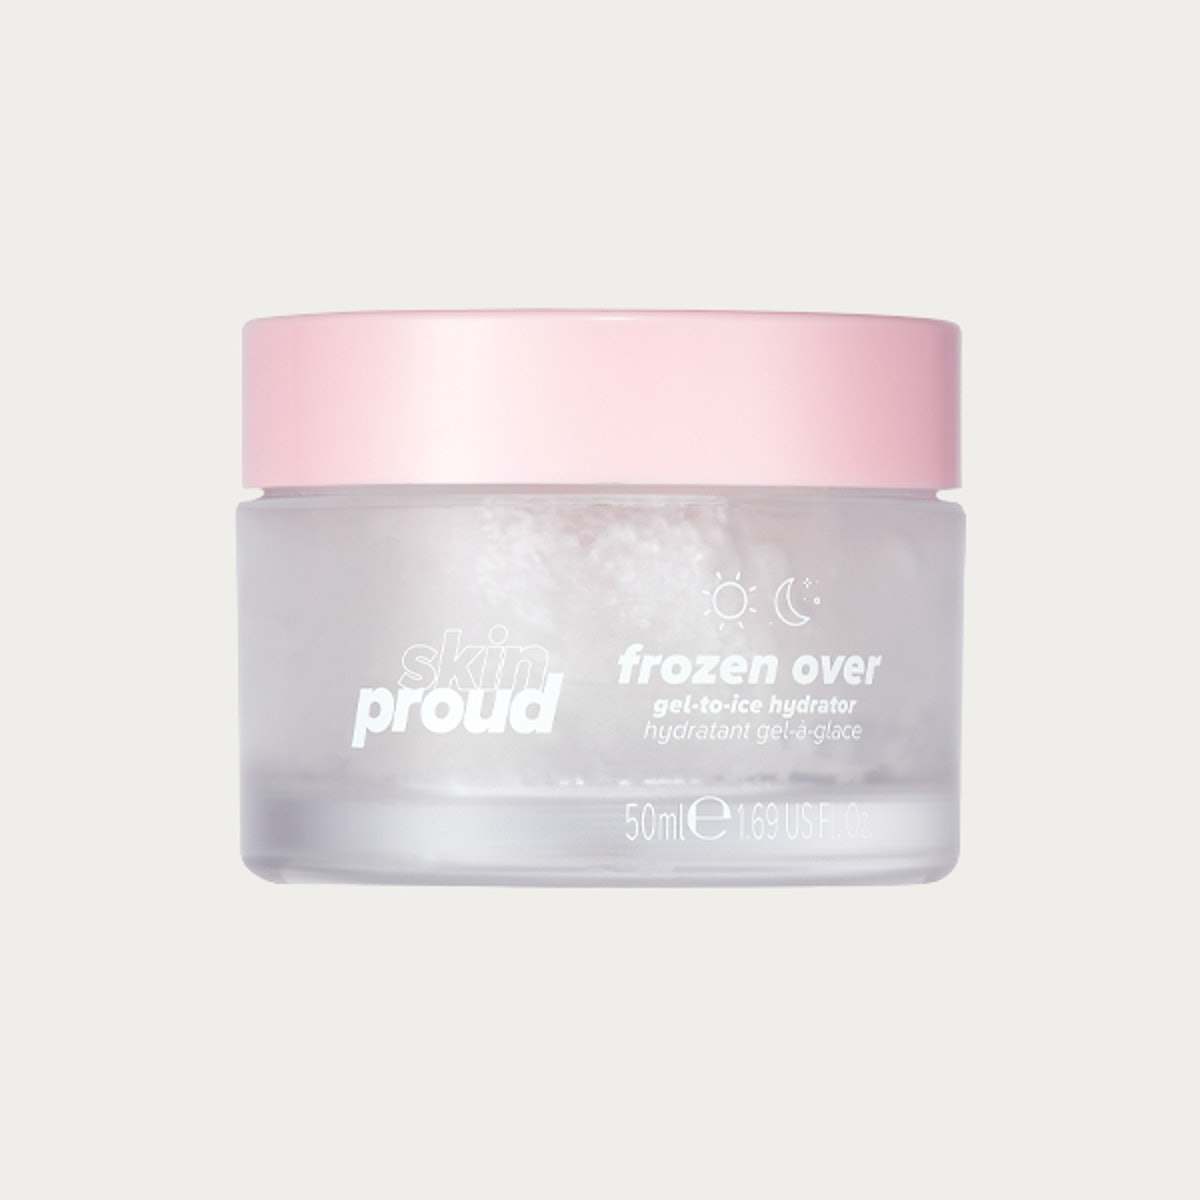 Skin Proud Frozen Over Moisturizer, Gel to Ice Hydrator with triple action hyaluronic acid